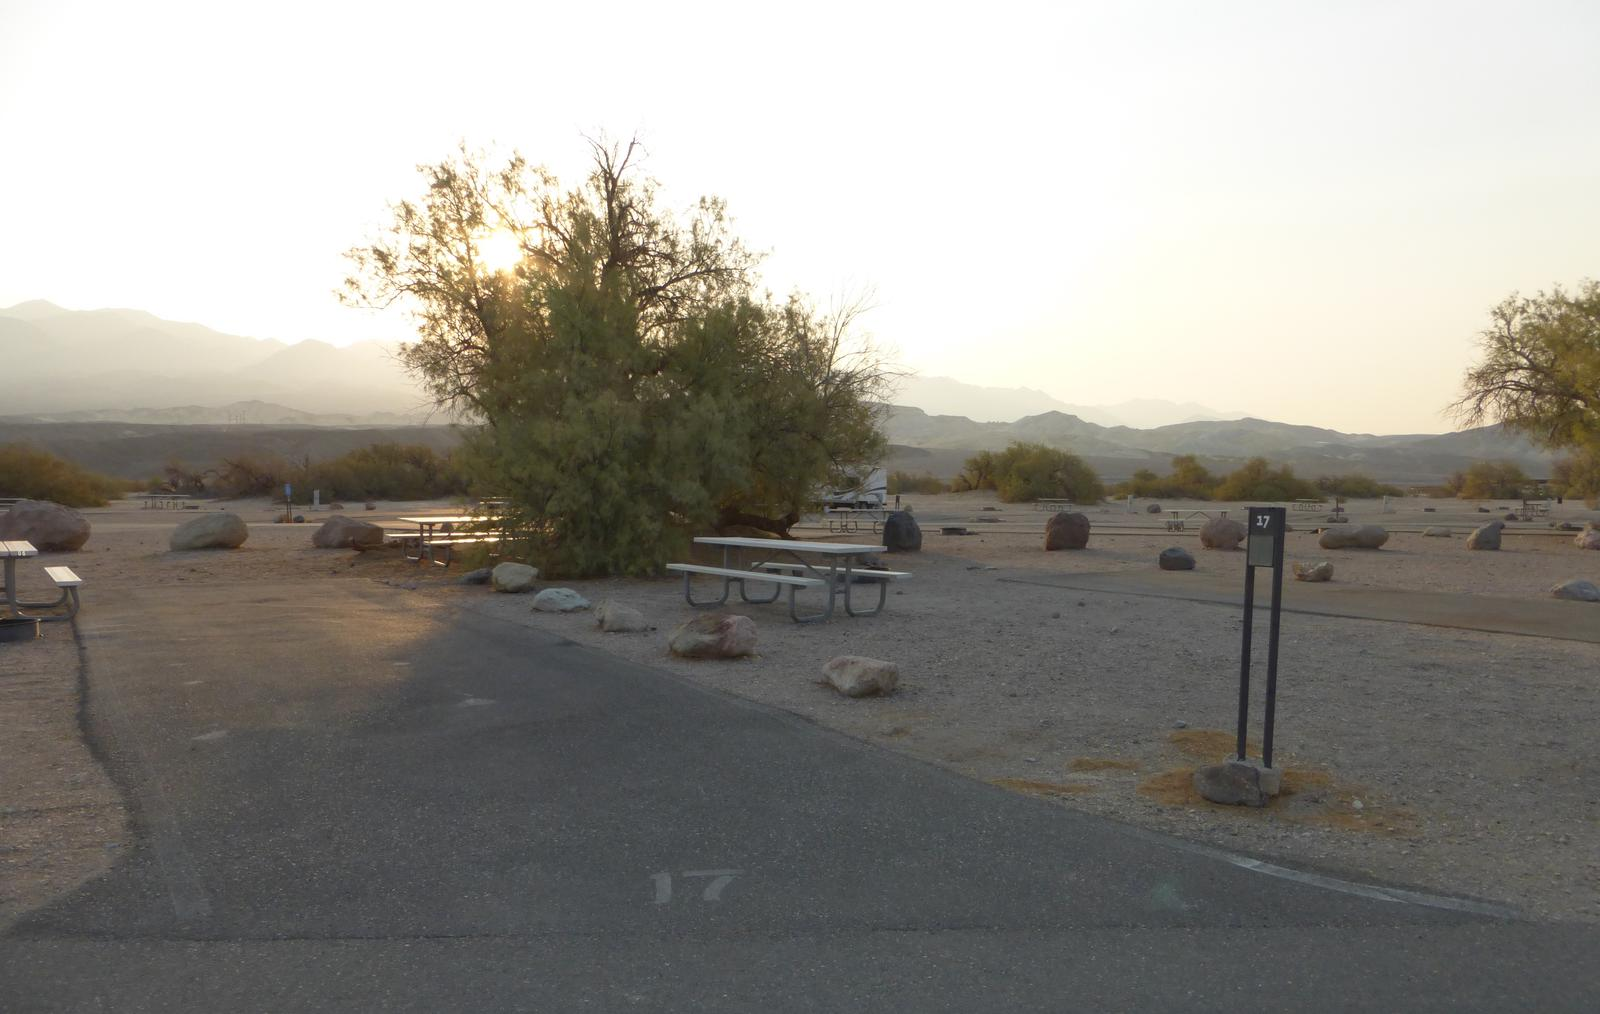 Furnace Creek Campground standard nonelectric site #17 with picnic table and fire ring.